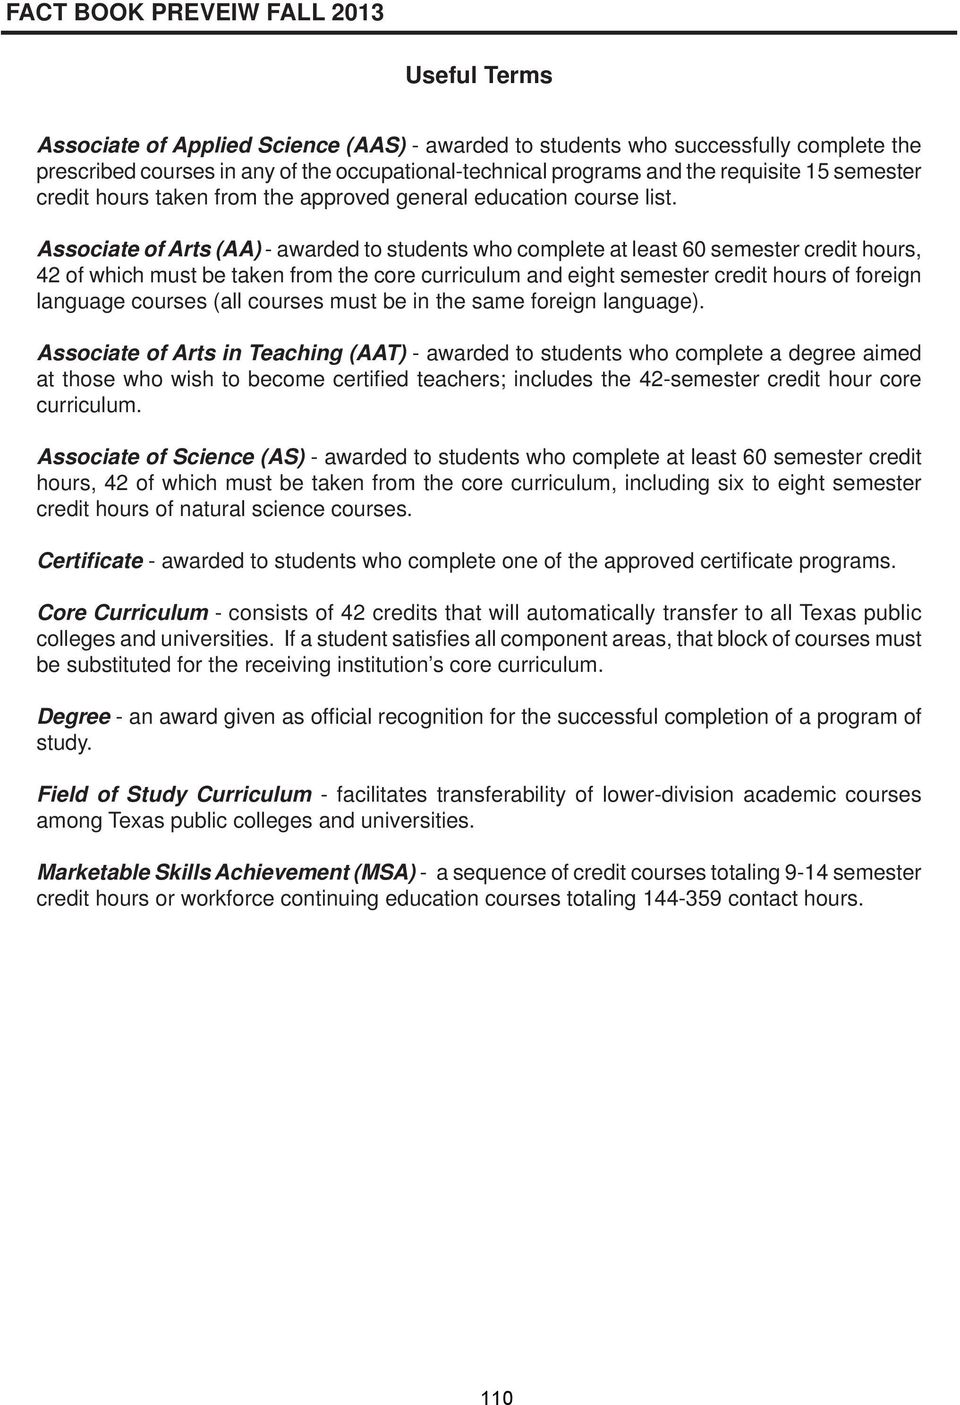 Associate of Arts (AA) - awarded to students who complete at least 60 semester credit hours, 42 of which must be taken from the core curriculum and eight semester credit hours of foreign language